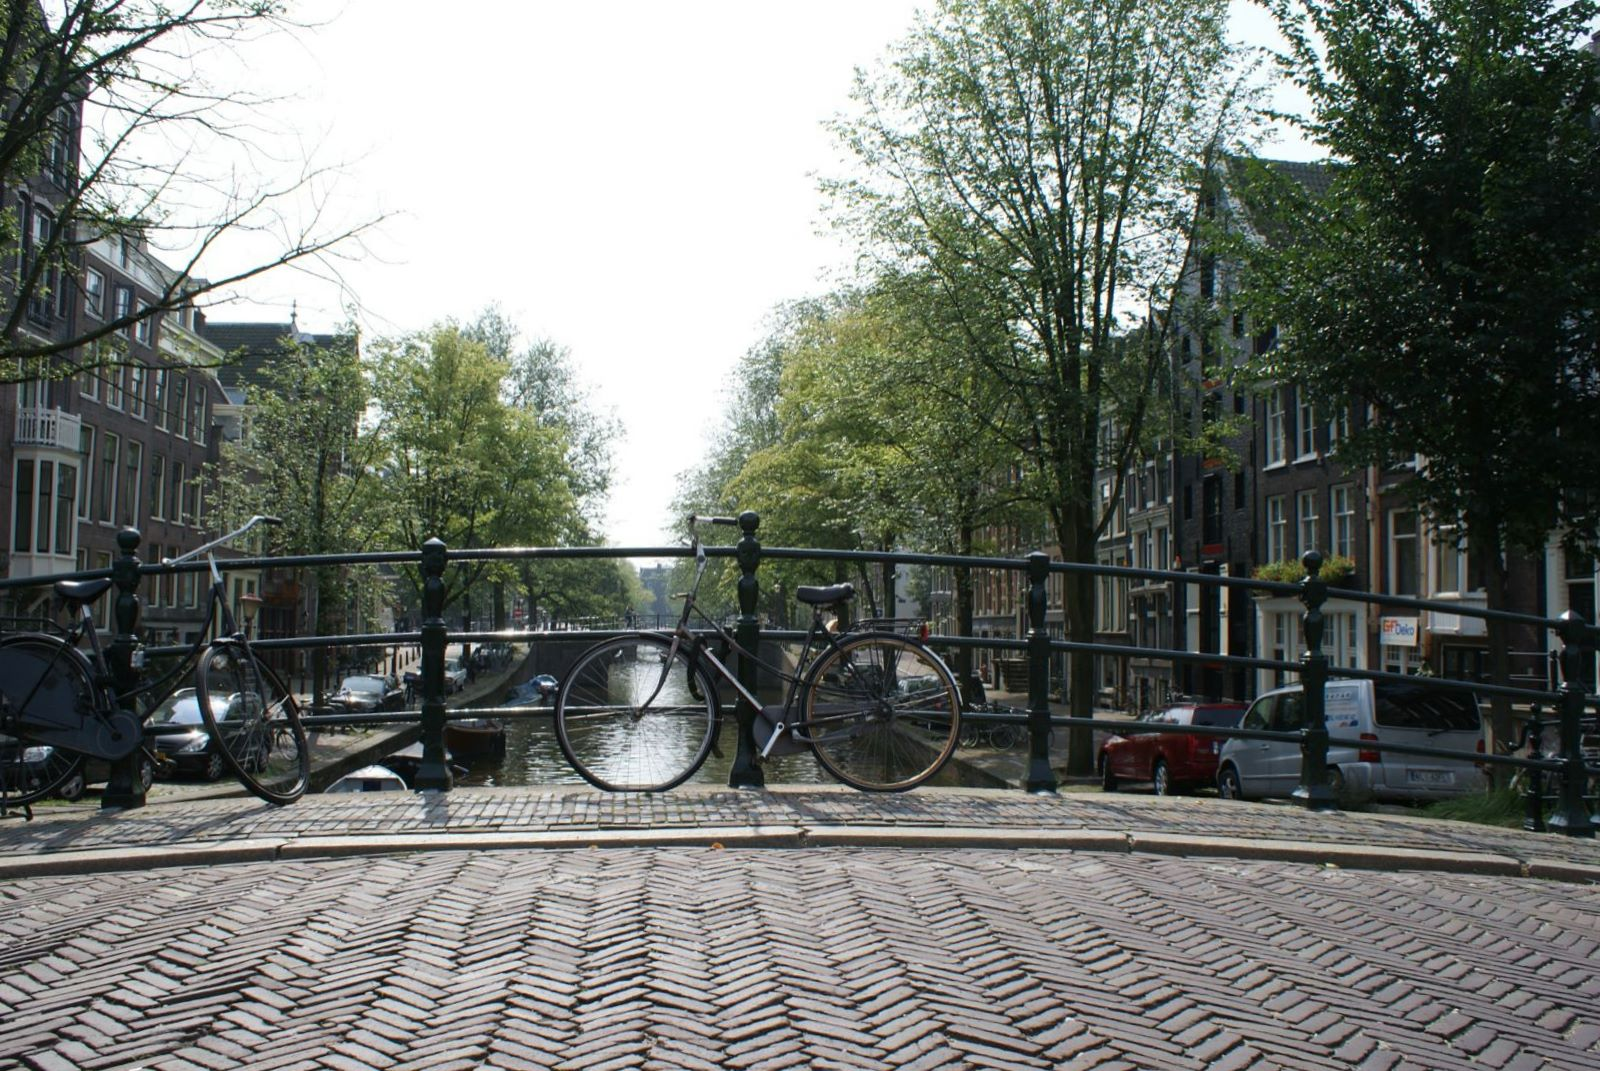 Dutch law firm Amsterdam lawyer contract law